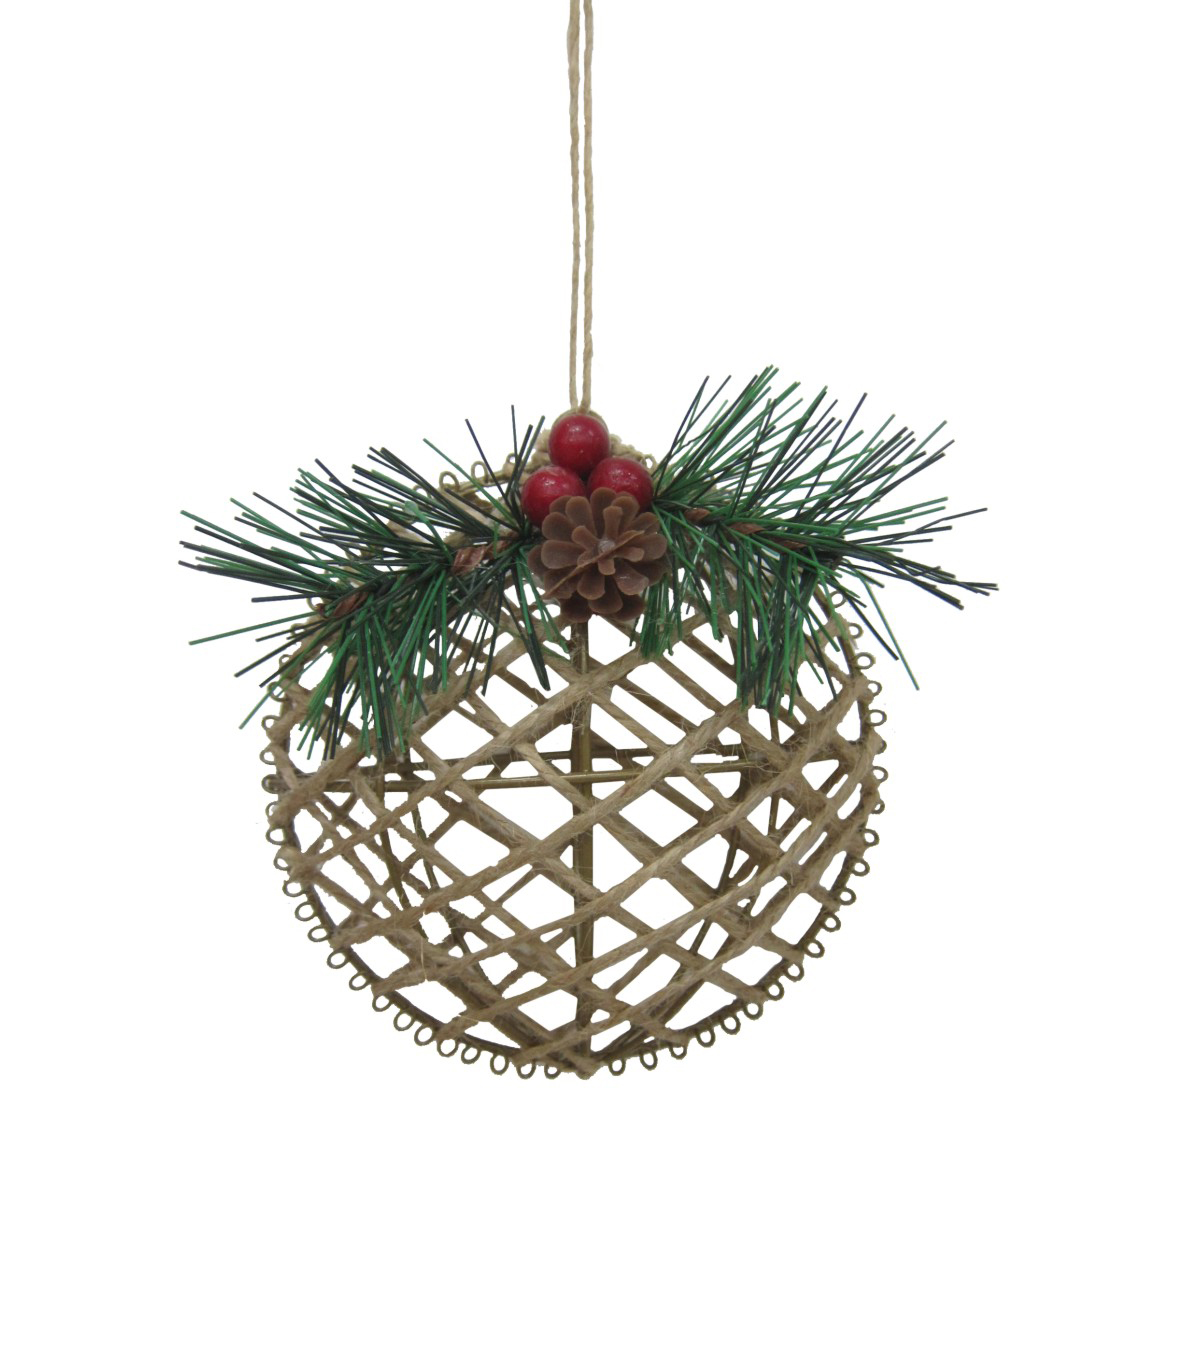 Maker's Holiday Christmas Woodland Lodge Jute Circle Ornament